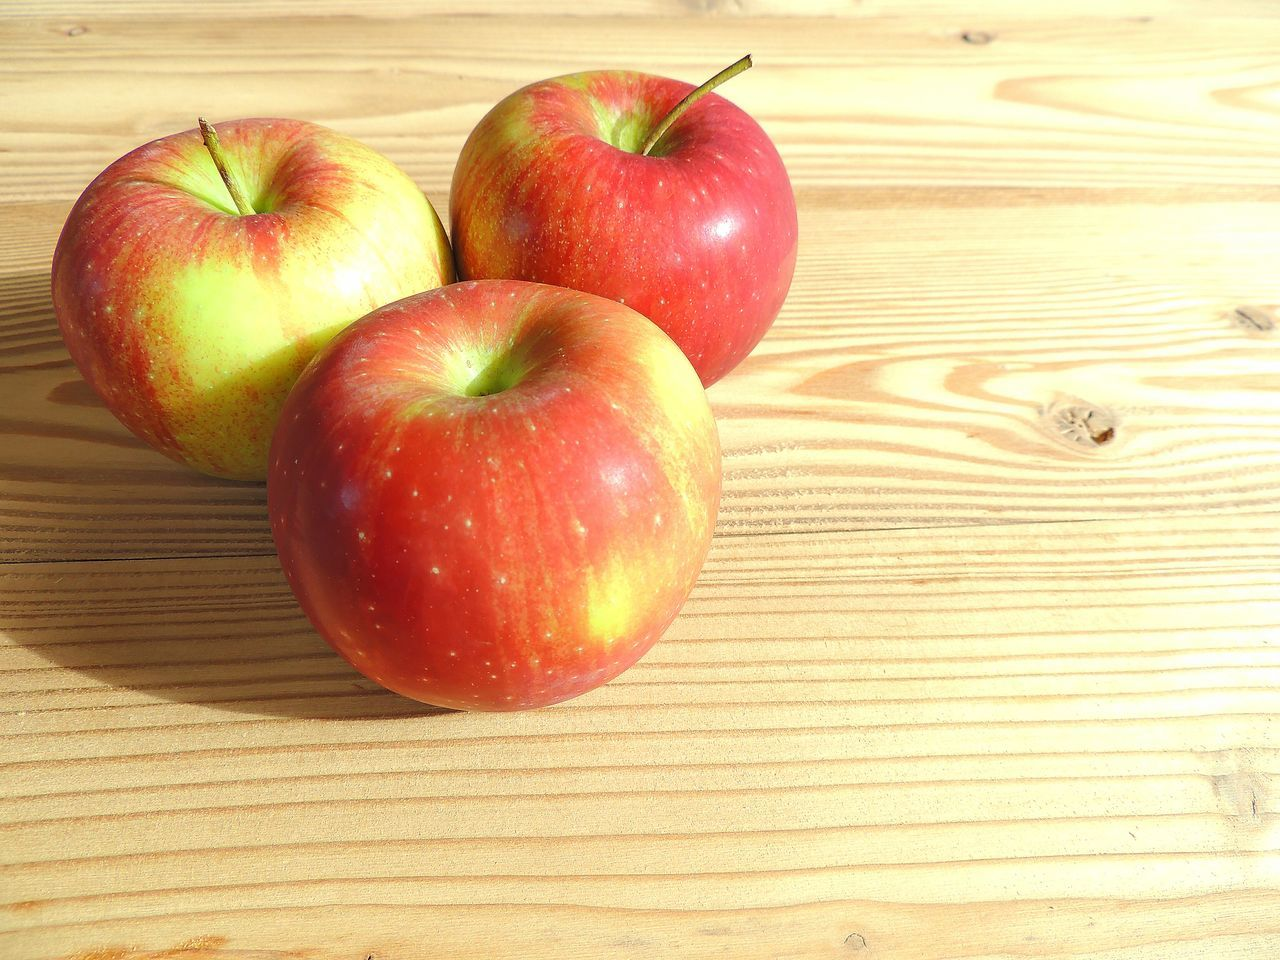 food and drink, fruit, food, healthy eating, apple - fruit, table, freshness, indoors, red, wood - material, no people, close-up, day